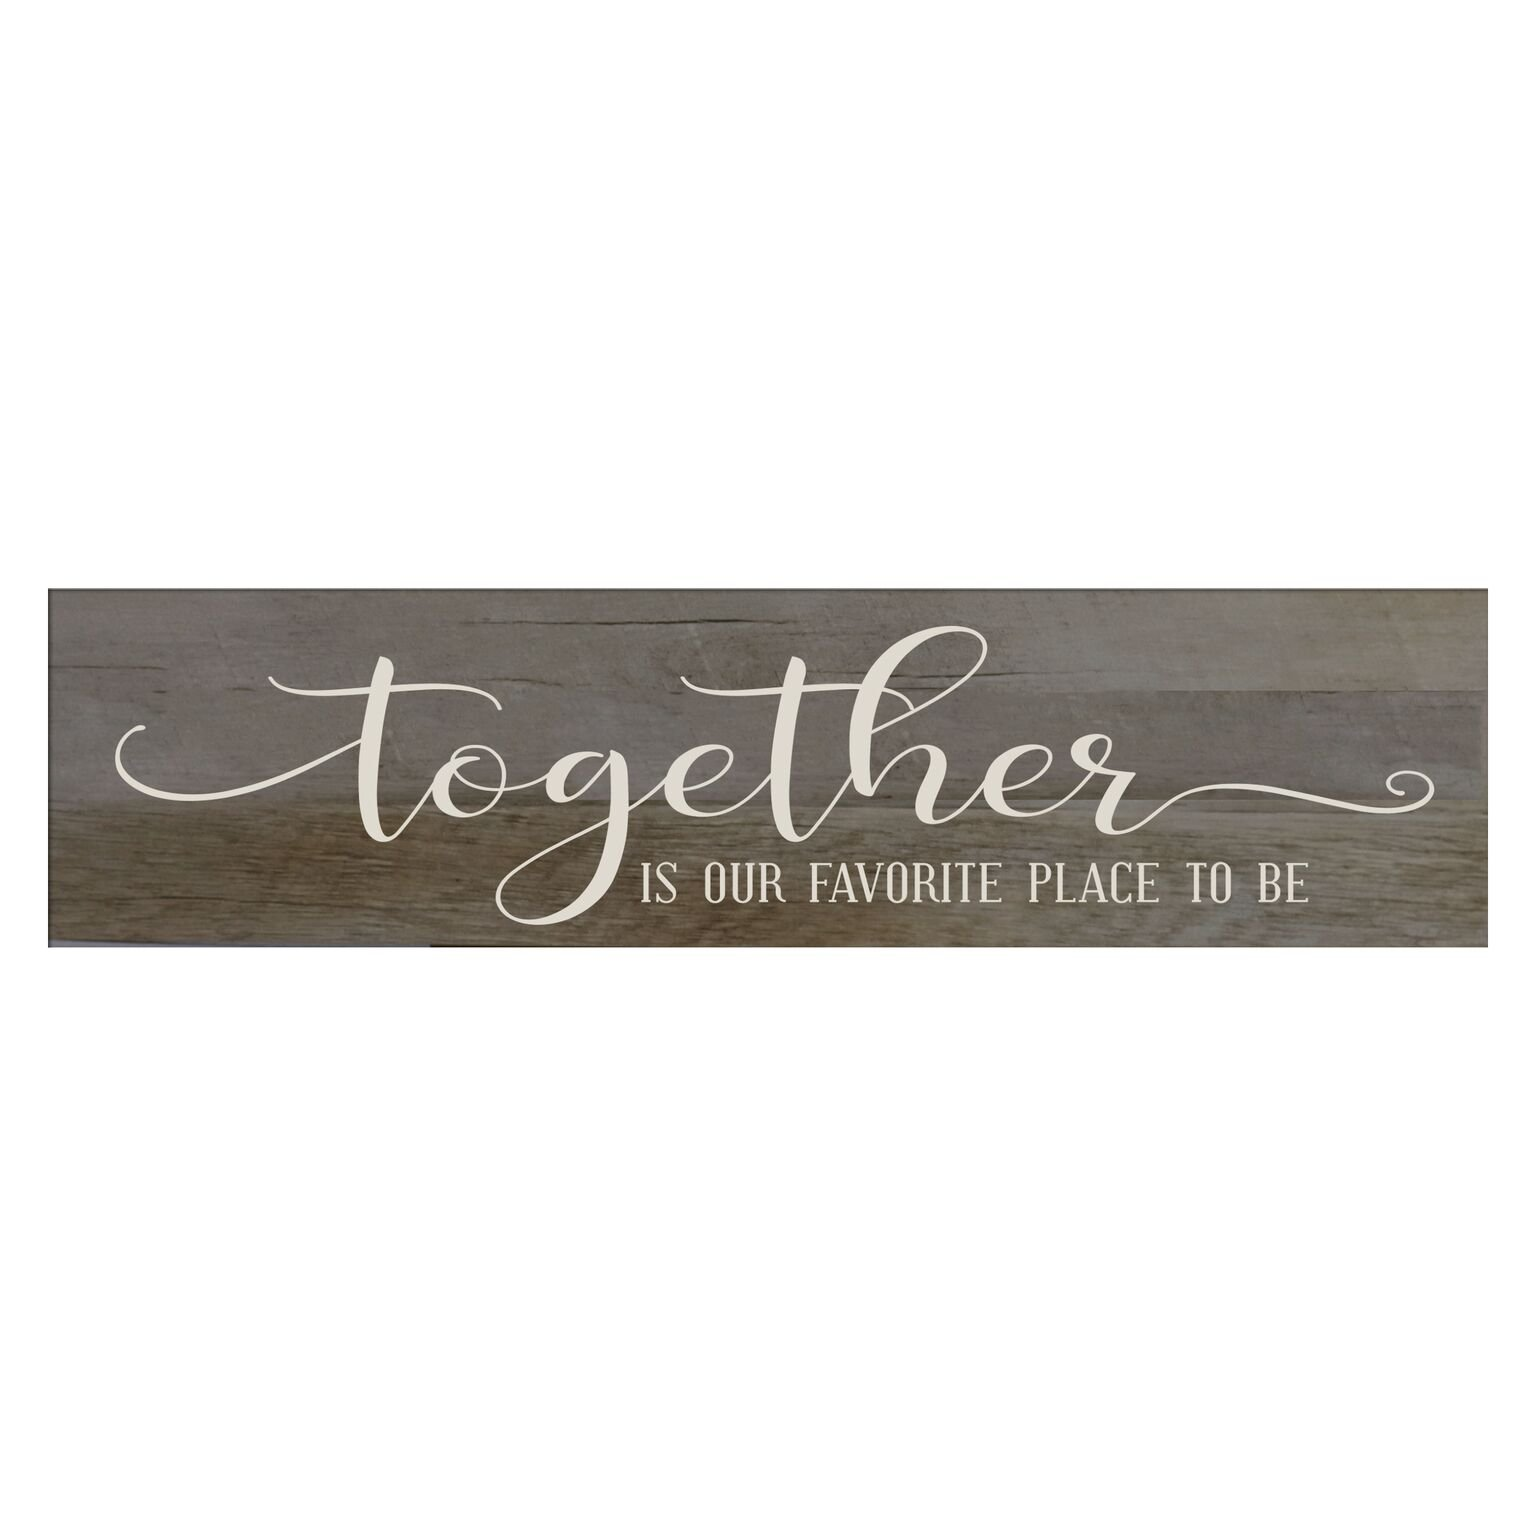 LifeSong Milestones Together is Our Favorite Place to Be, Decorative Wall Art Decor Sign for Living Room, Entryway, Kitchen, Bedroom,Office, Wedding Idea (Barnwood)